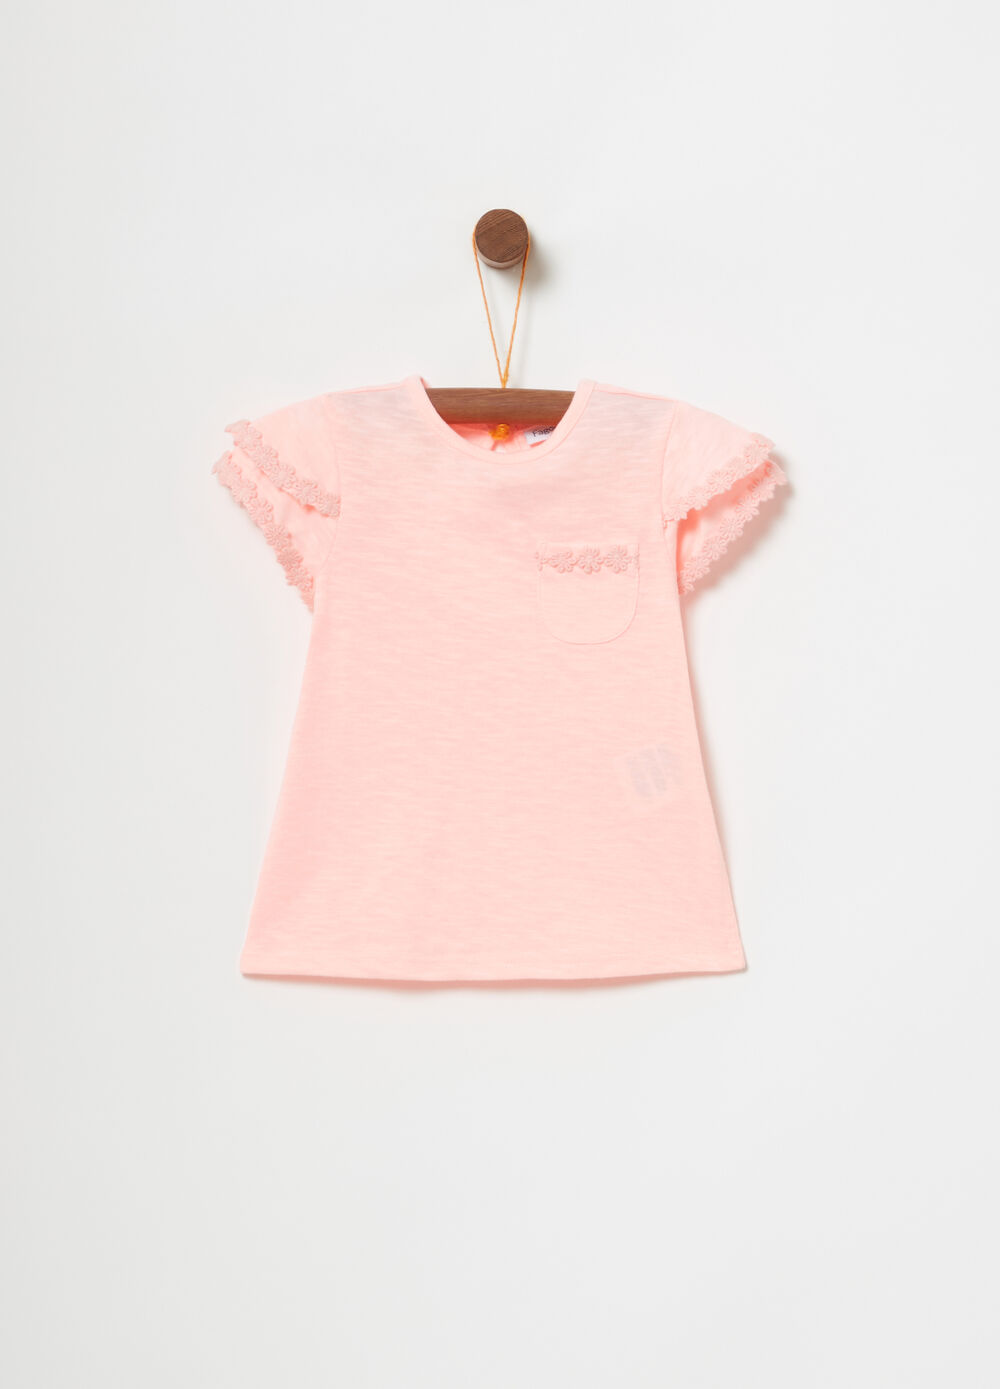 T-shirt with double sleeves and trim